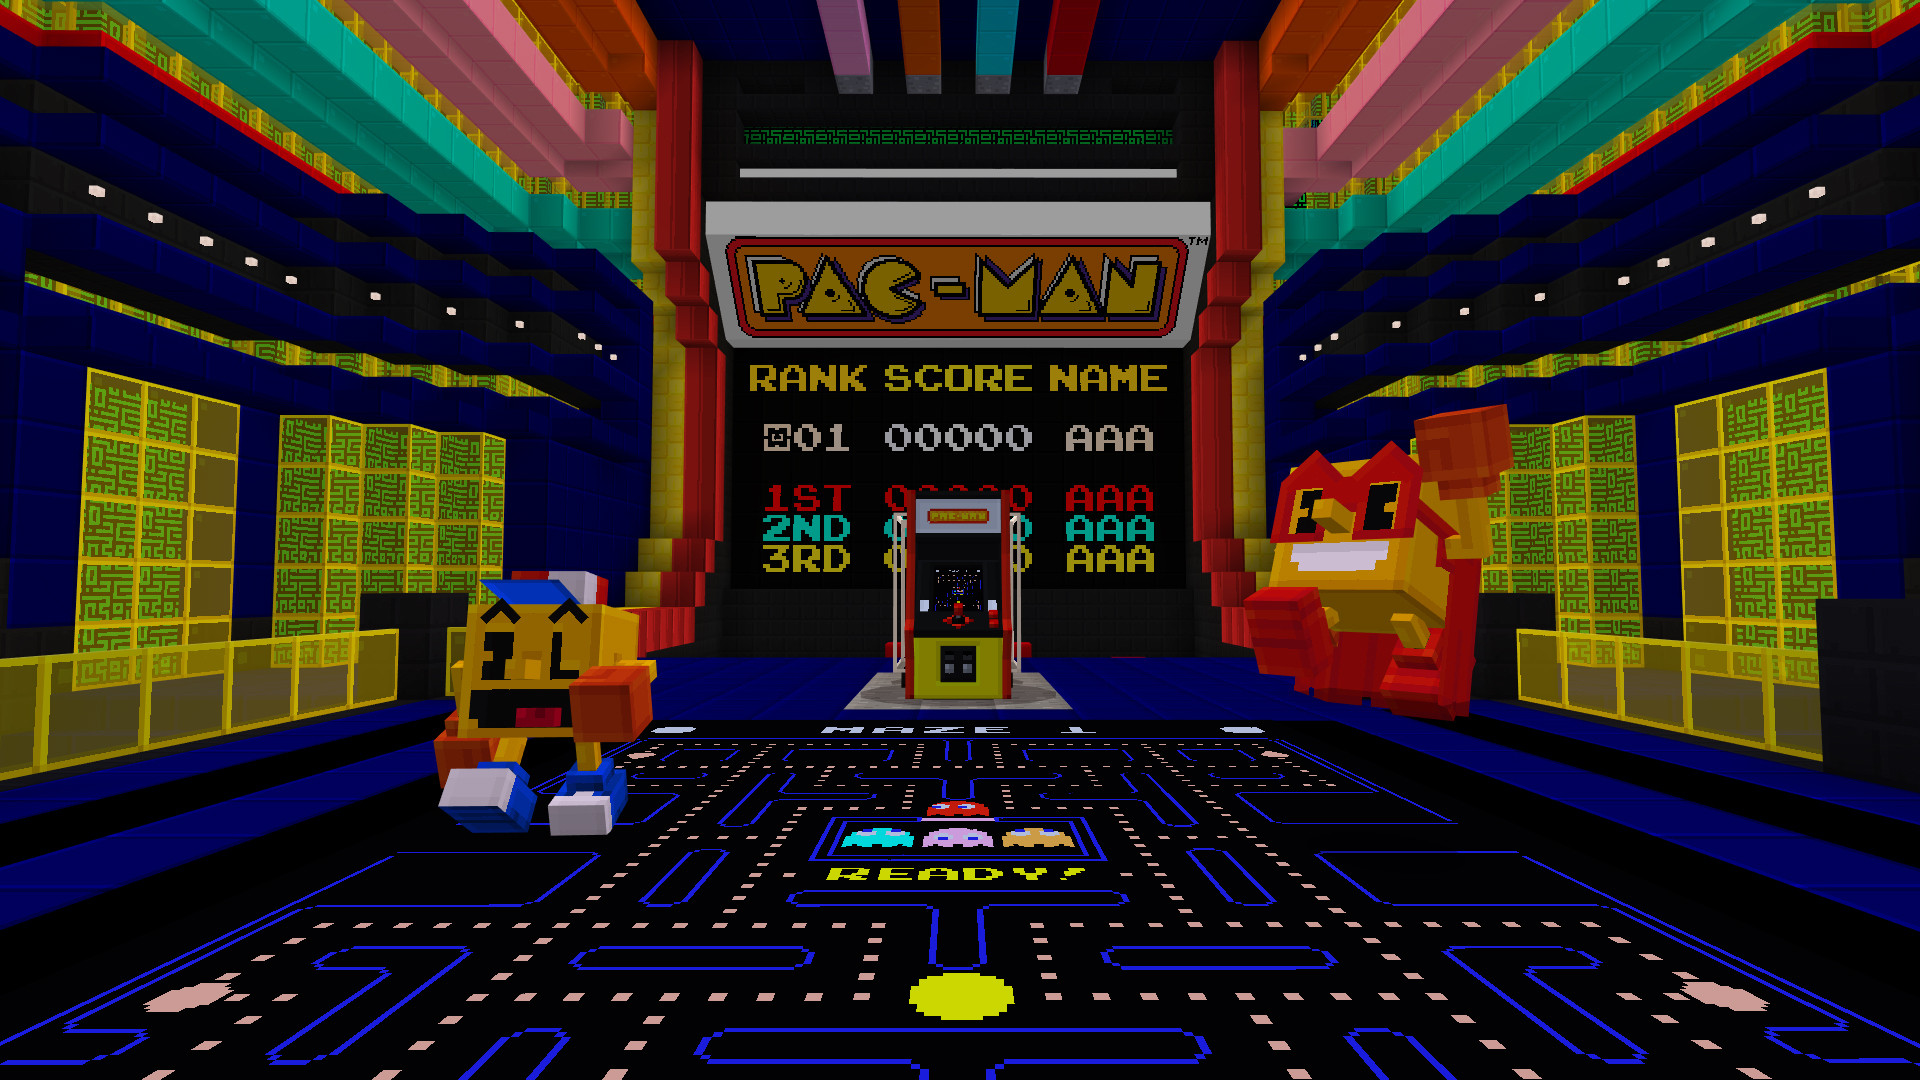 PAC-MAN_MarketingScreenshot_0.jpg